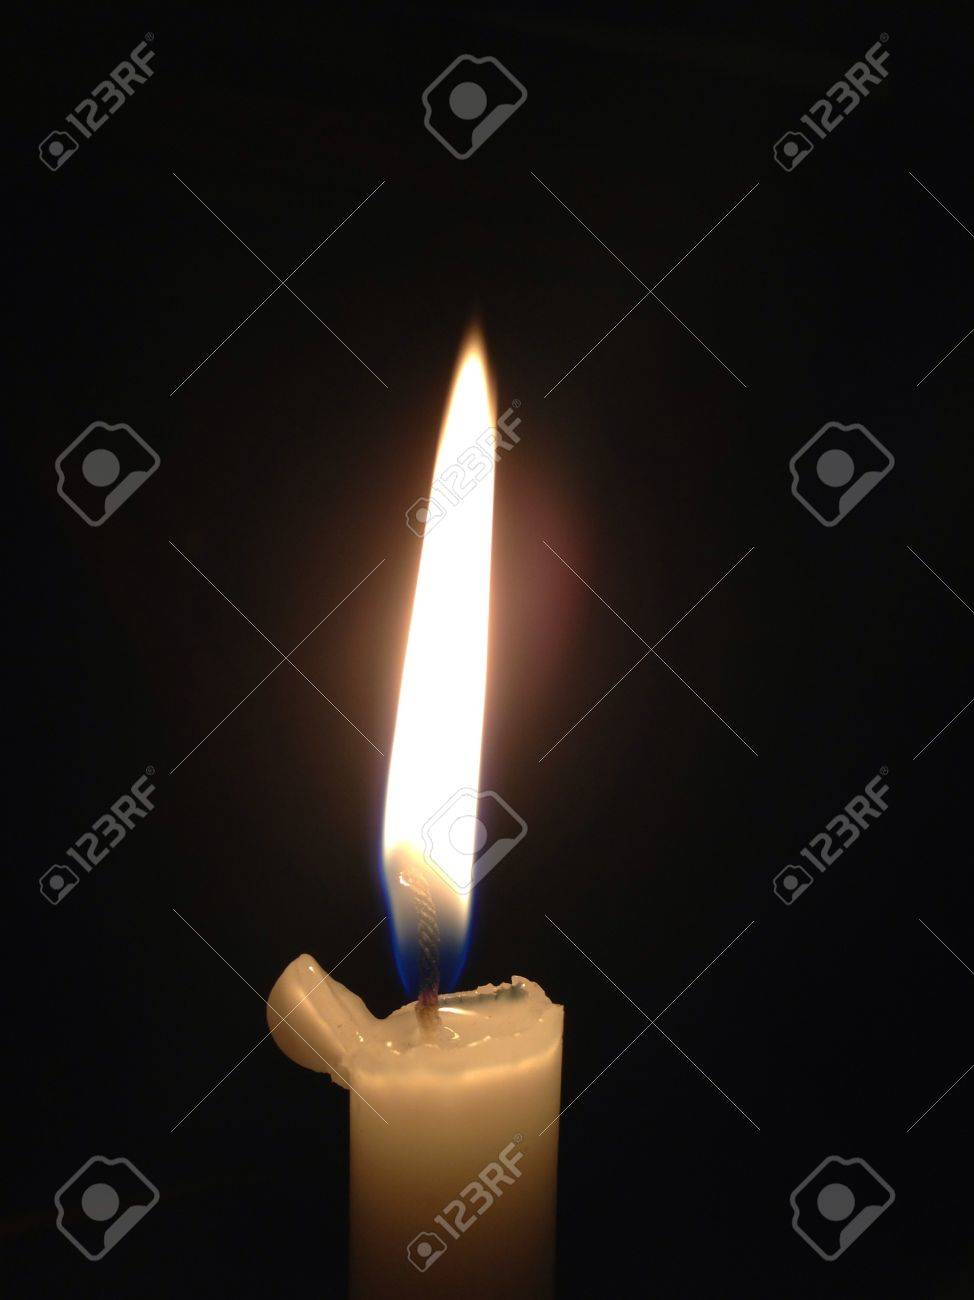 Dark room with candle light - A Light That Fills A Dark Room At Night One Candle And Its Luminosity In Darkness